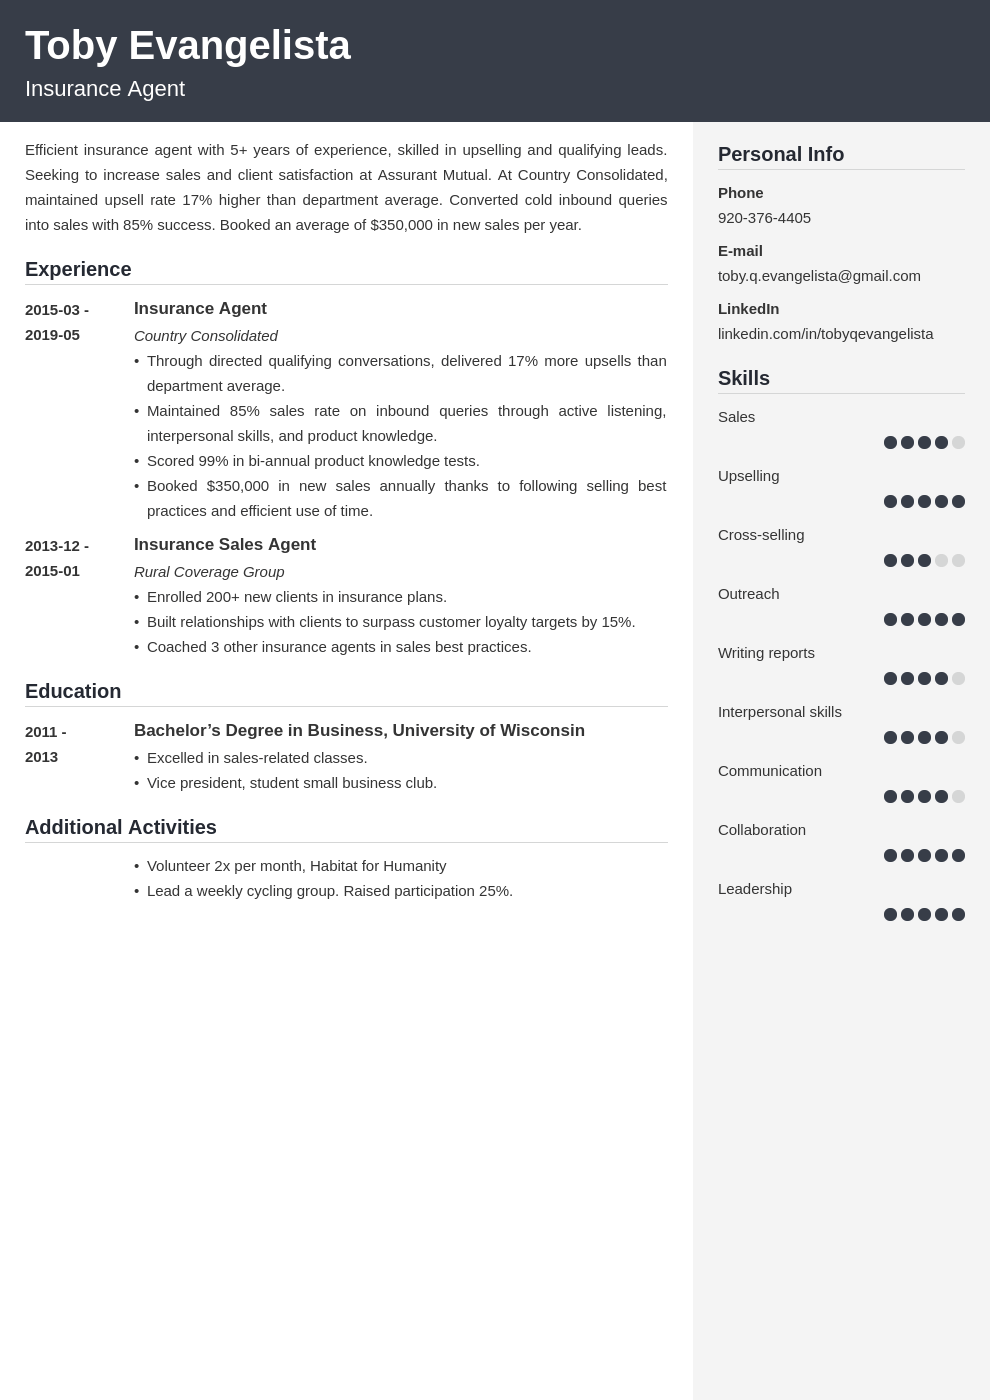 insurance agent resume example template cubic in 2020 | Resume examples, Server resume, Job ...